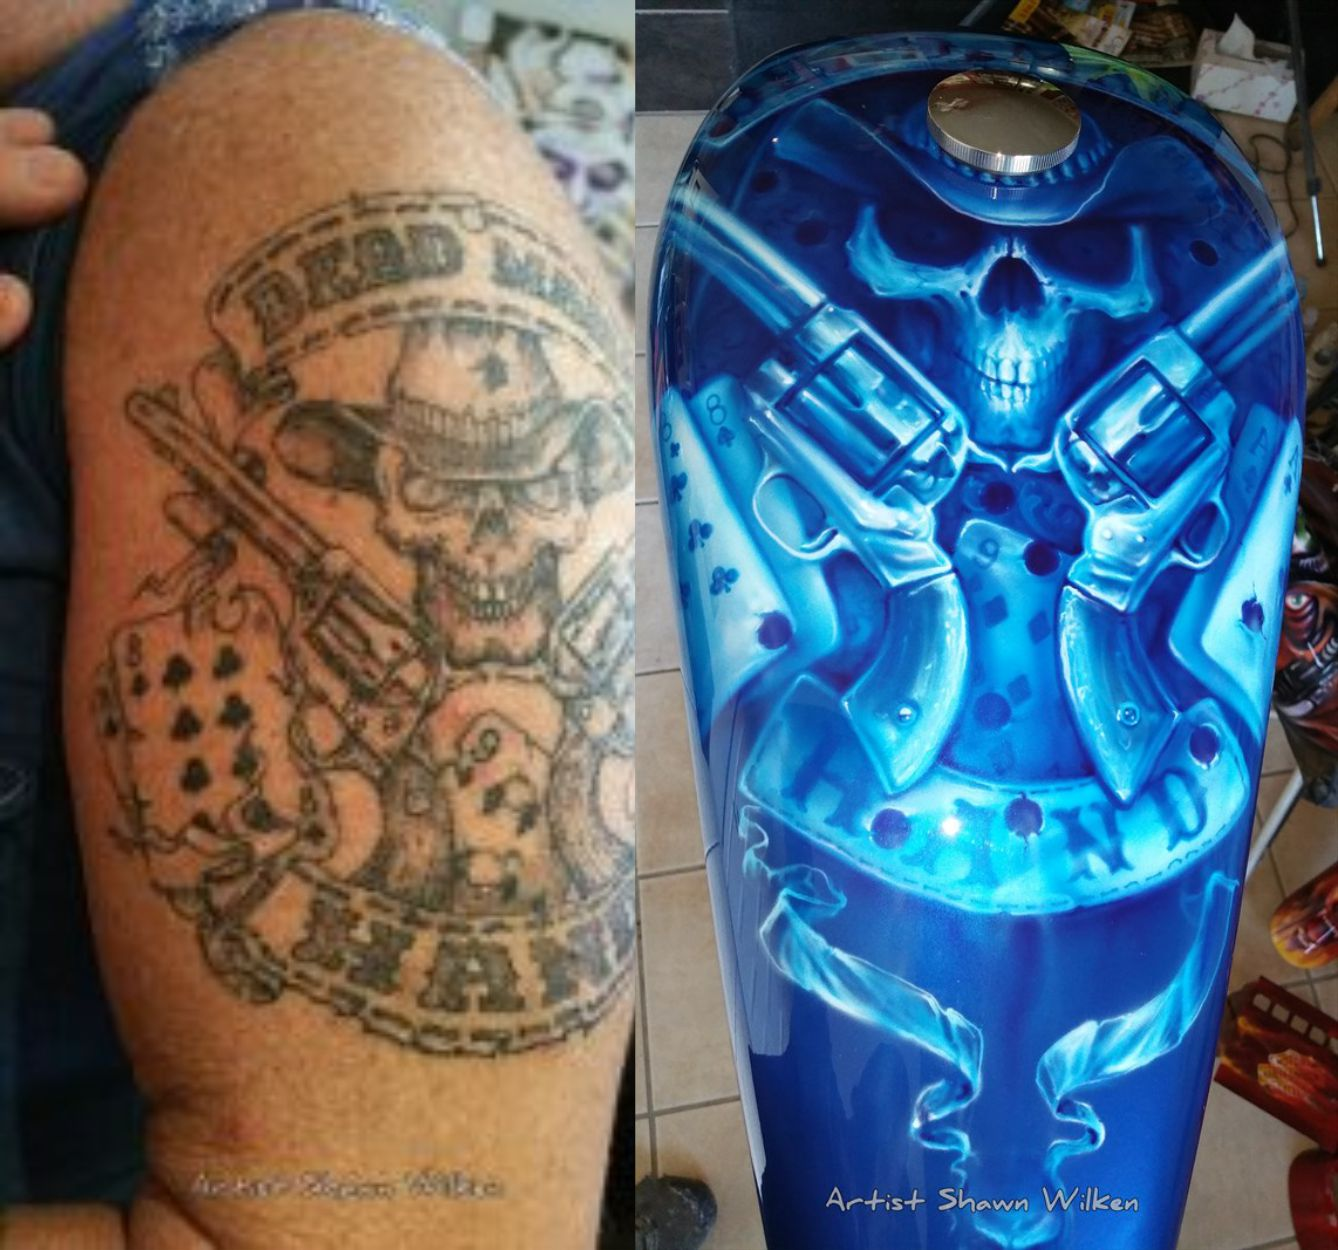 Shawn Wilken Dead Mans Hand Motorcycle Air Brush To The Skin Tattoo